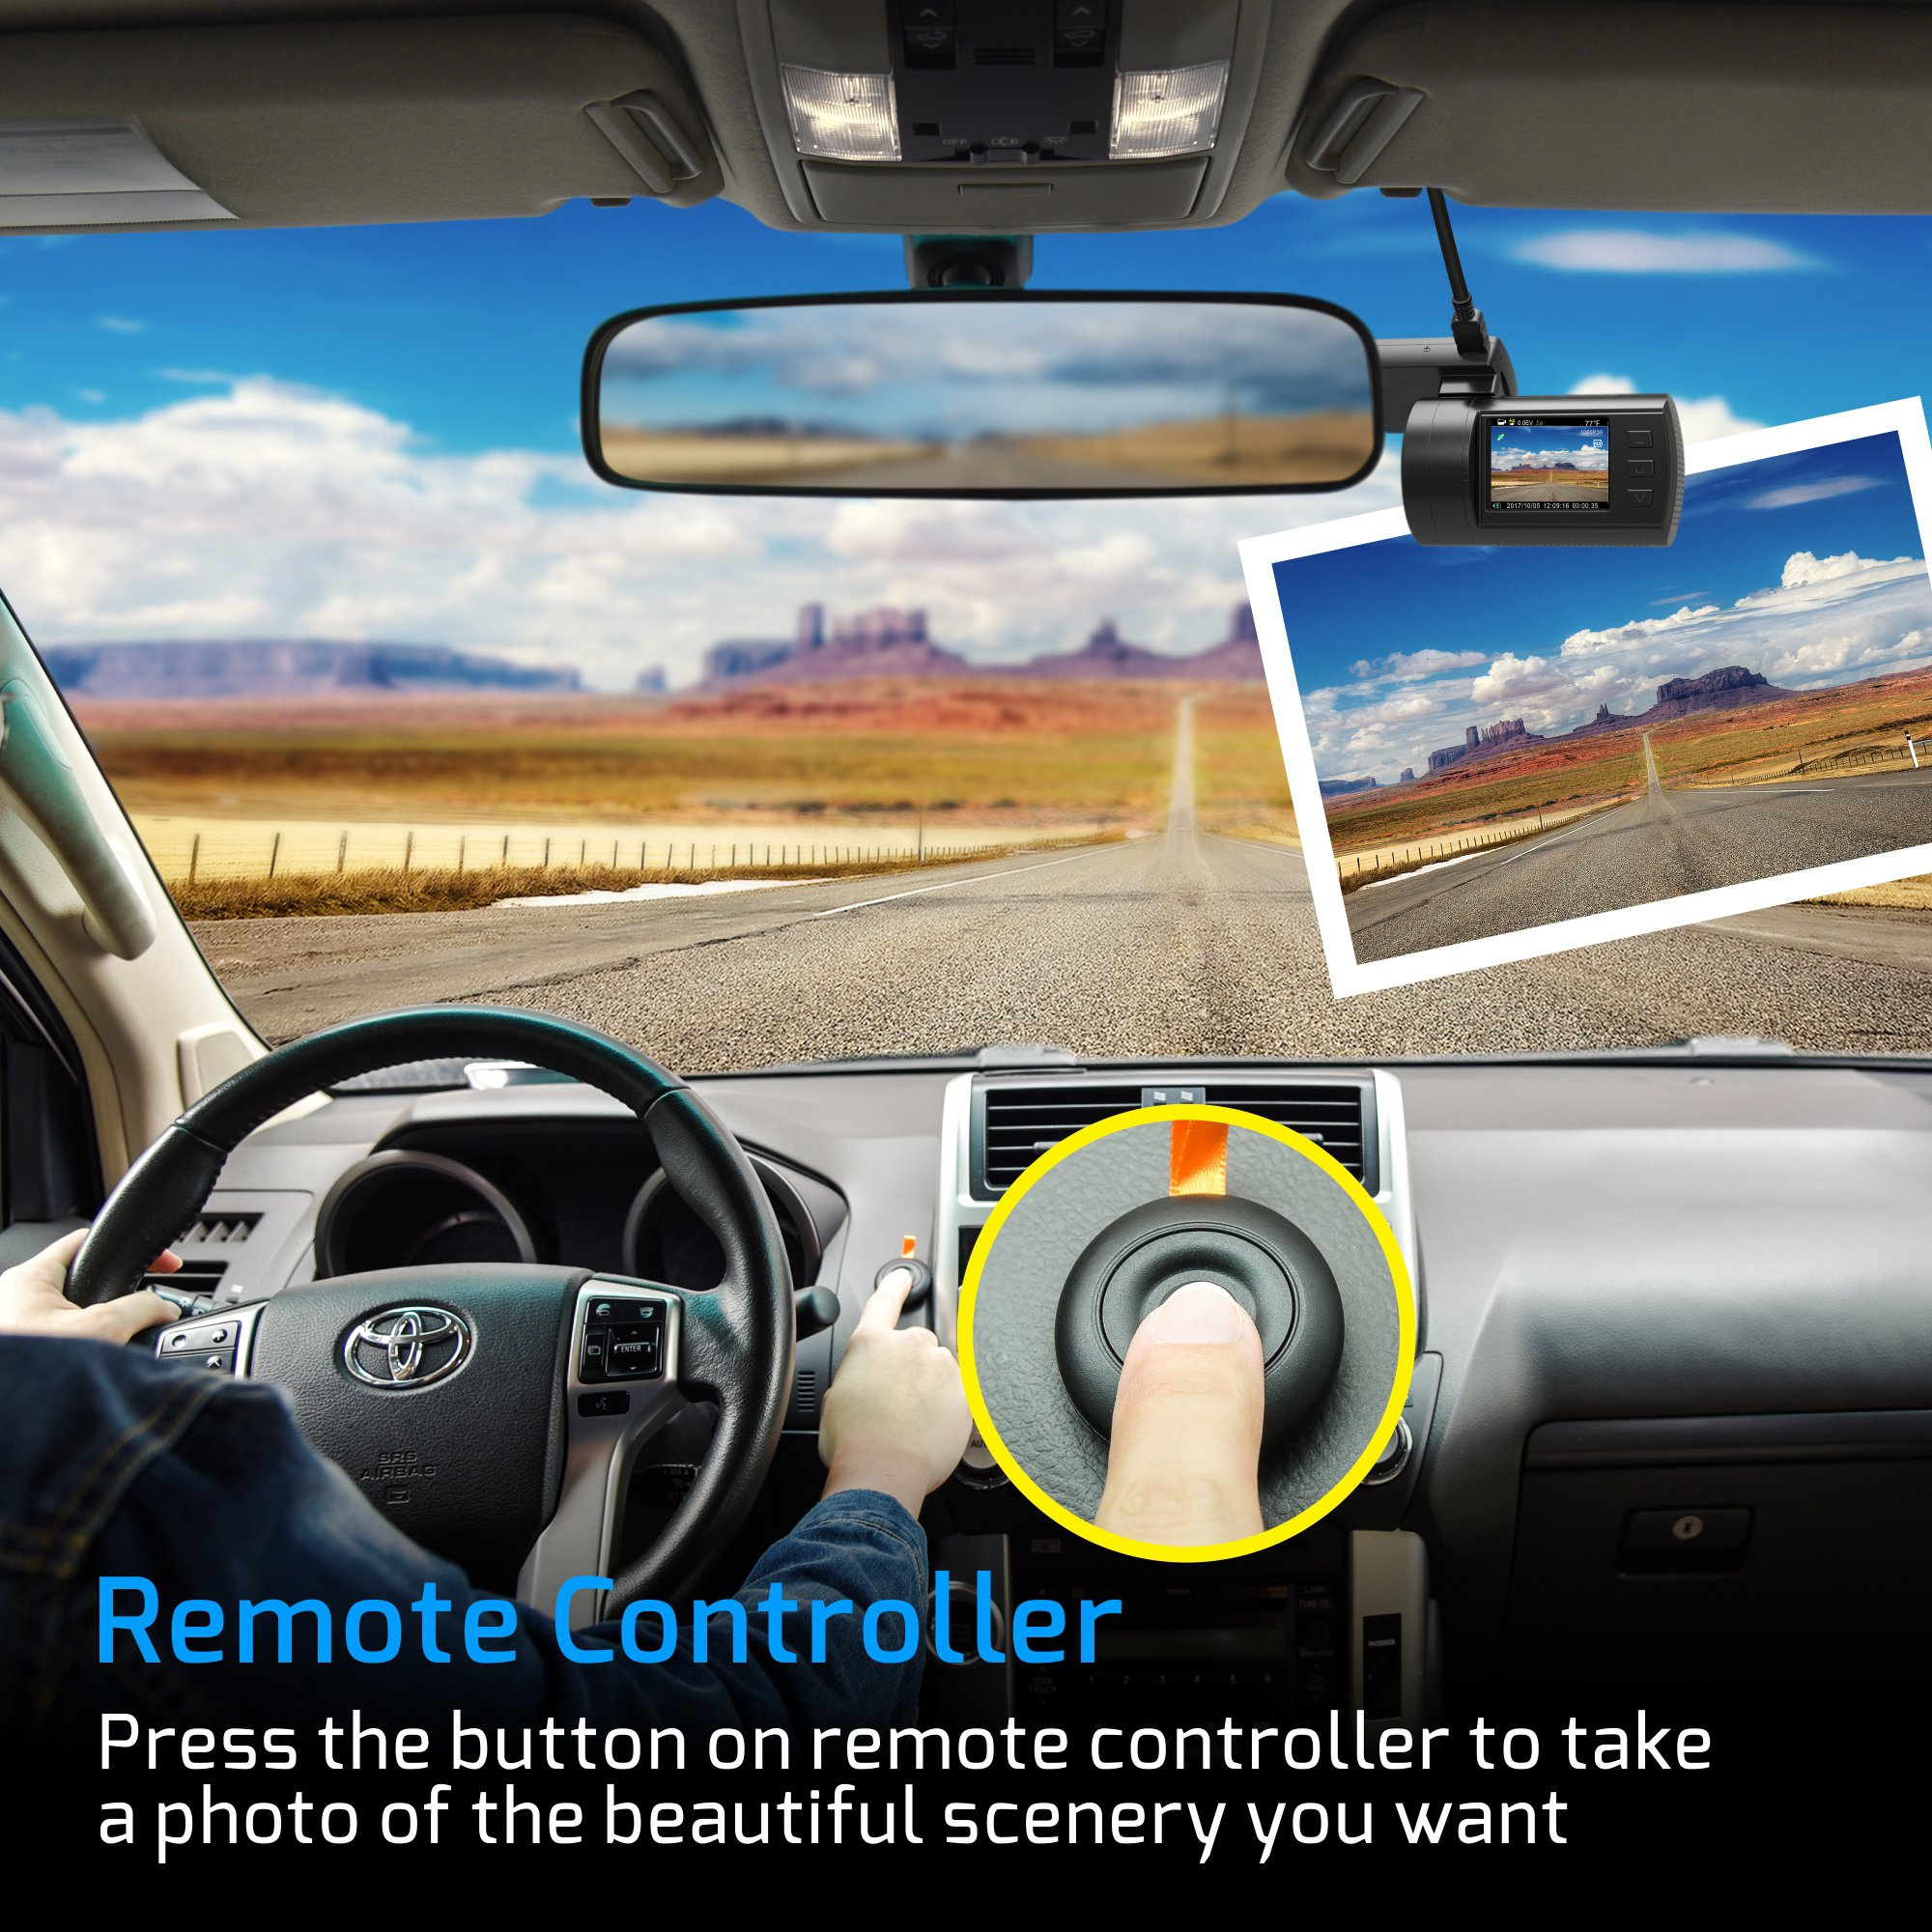 Dual Dash Cam, Veckle Mini 0906 Dual Channel 1080P FHD Dashboard Camera Recorder with GPS, CPL Filter, Sony Night Vision Exmor Sensor, 7 Lens Wide Angle 1.5 inch LCD, Loop Recording Dash Cam for Car by Veckle (Image #5)